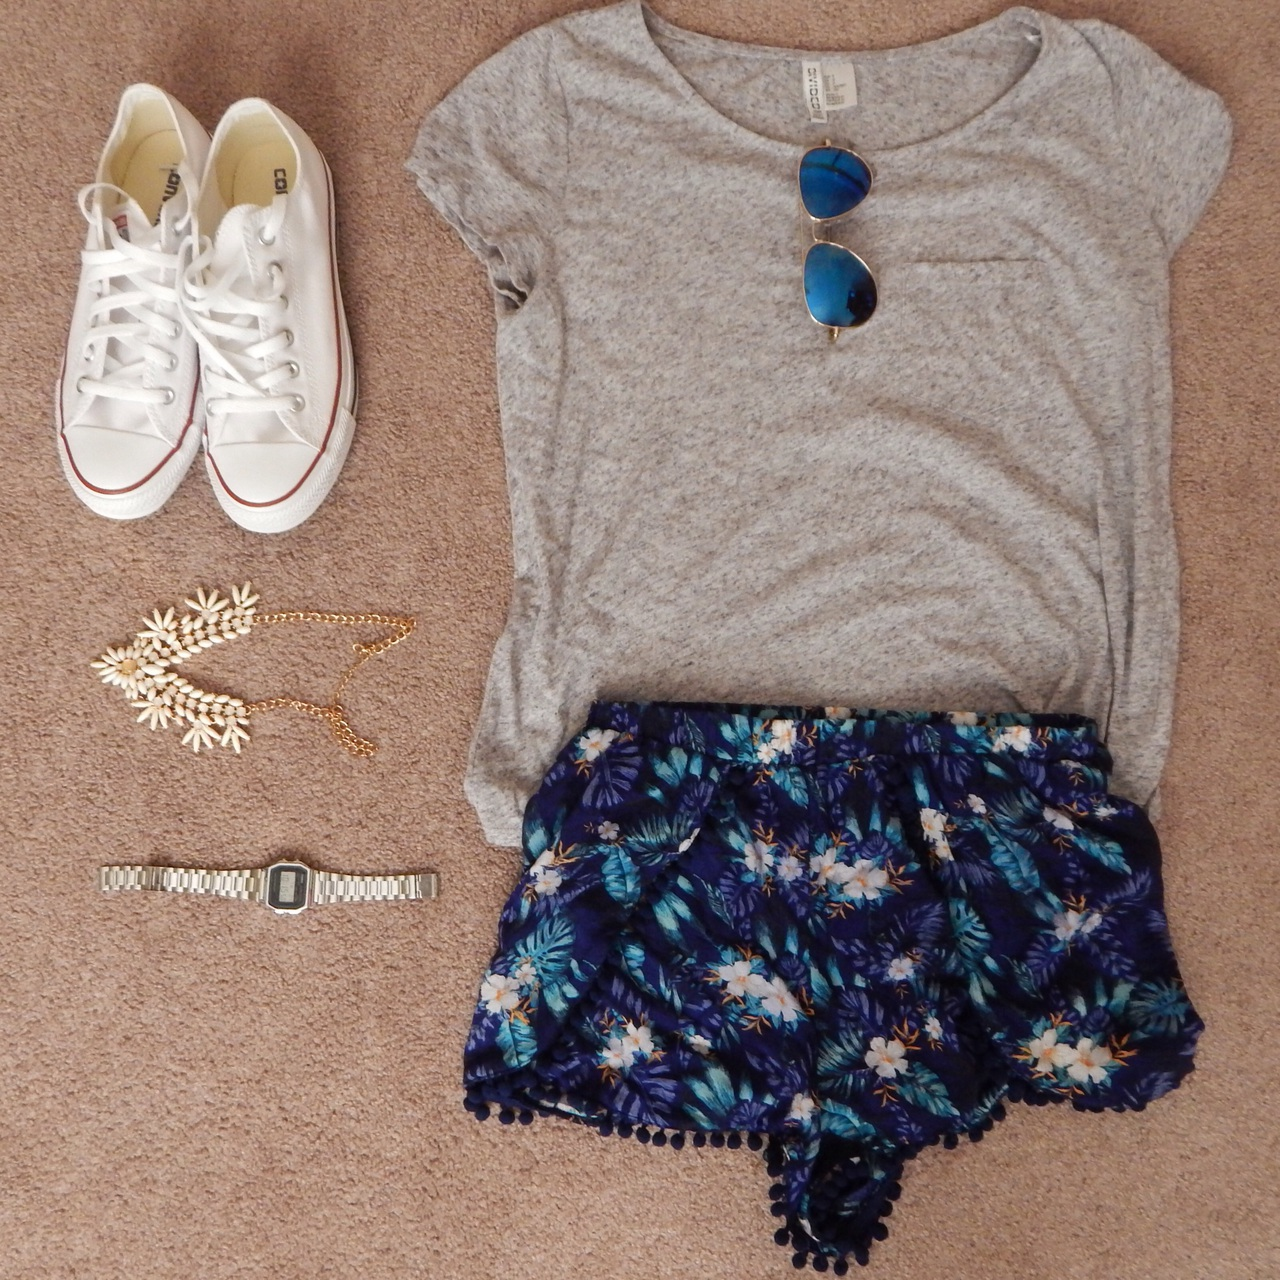 all star, all stars, aviator, casio, clot, converse, fashion, fashionista, flowy top, h&m, hq, necklace, outfit, outfits, summer, sunglasses, top, watch, white, low converse, grey top, casio watch, mirror sunglasses, pom pom shorts, ootd